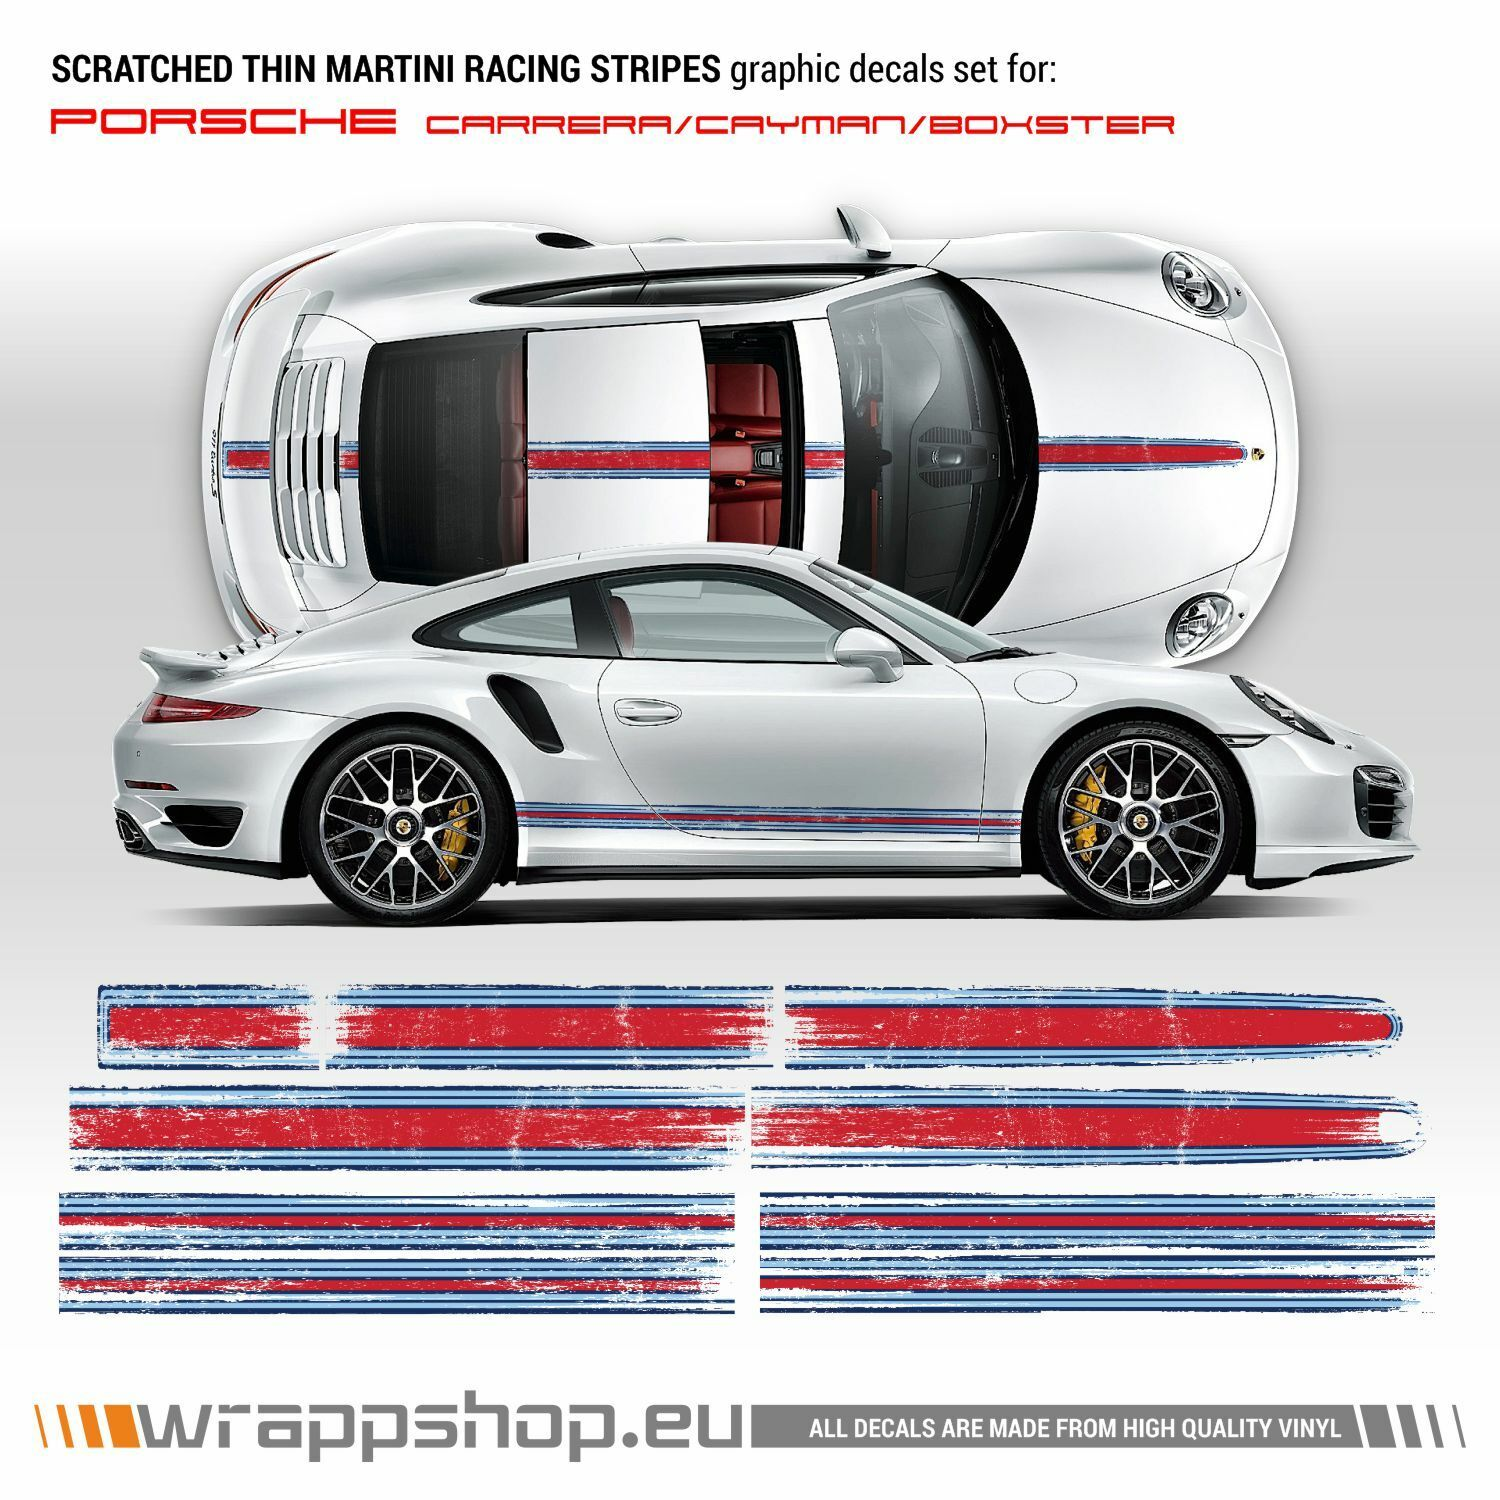 Scratched Thin Martini Racing Stripes Kit For Porsche Carrera Cayman Boxster Ebay